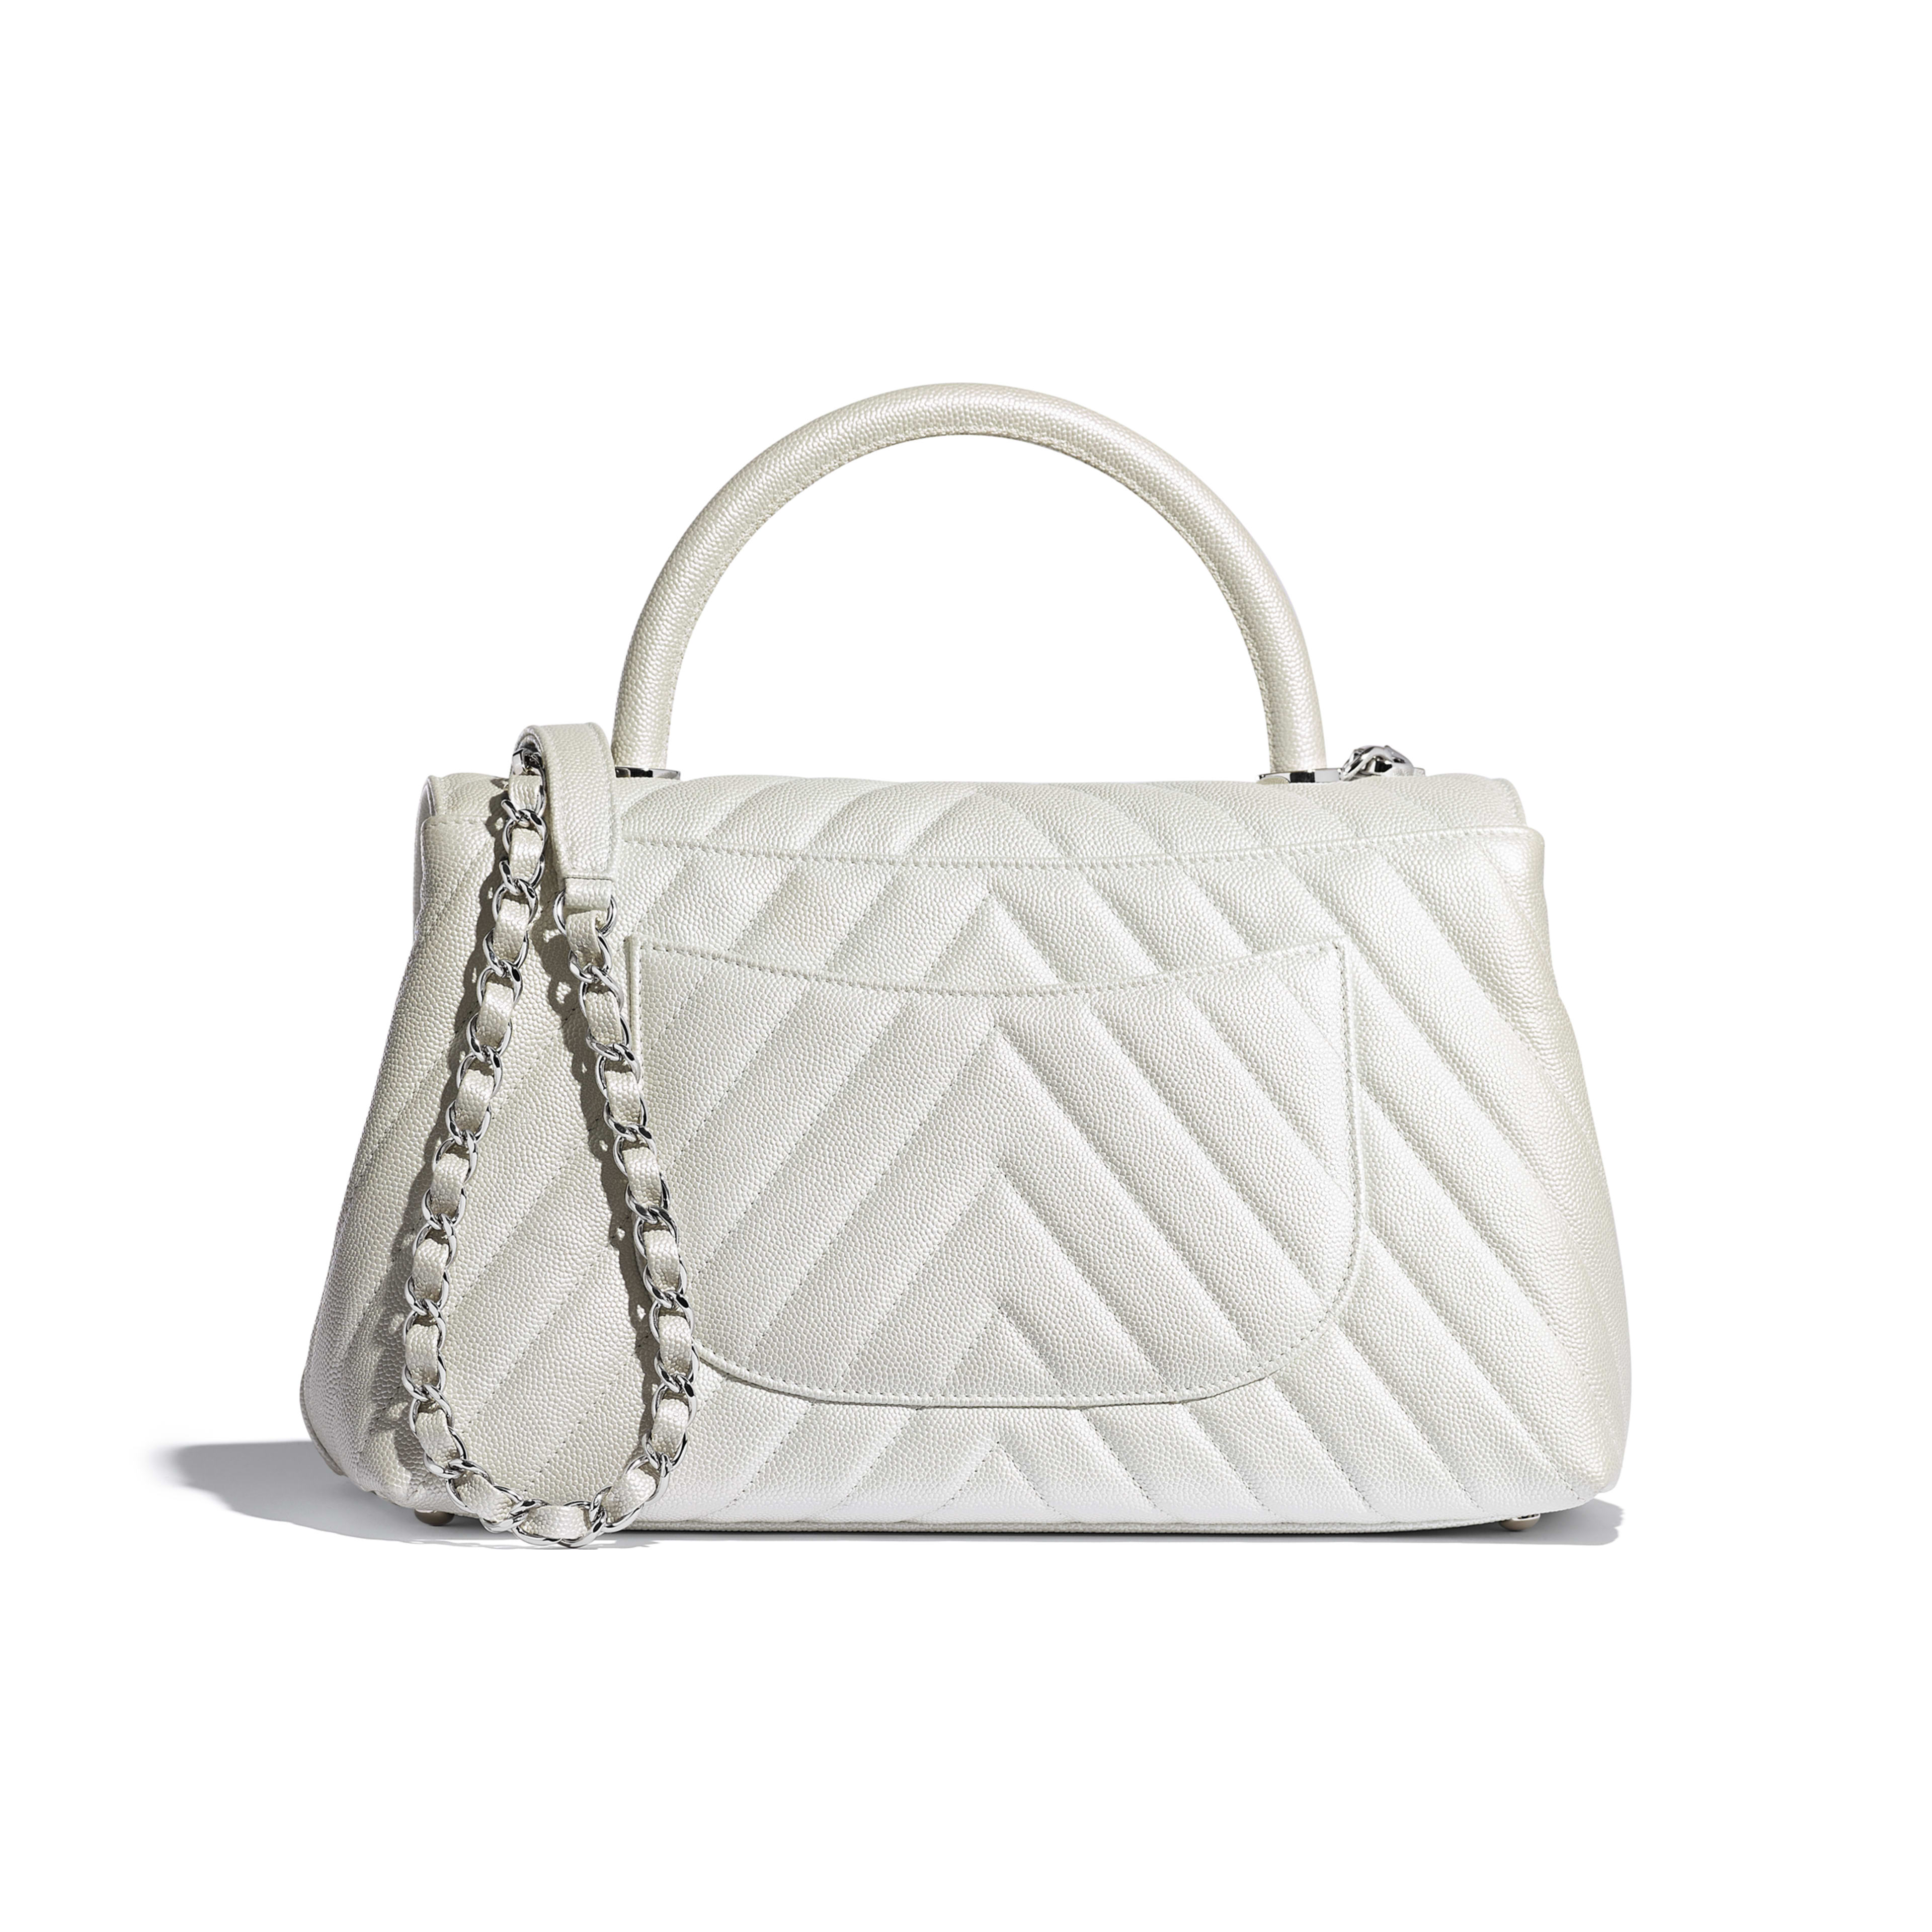 Iridescent Grained Calfskin Silver Tone Metal White Flap Bag With Top Handle Chanel